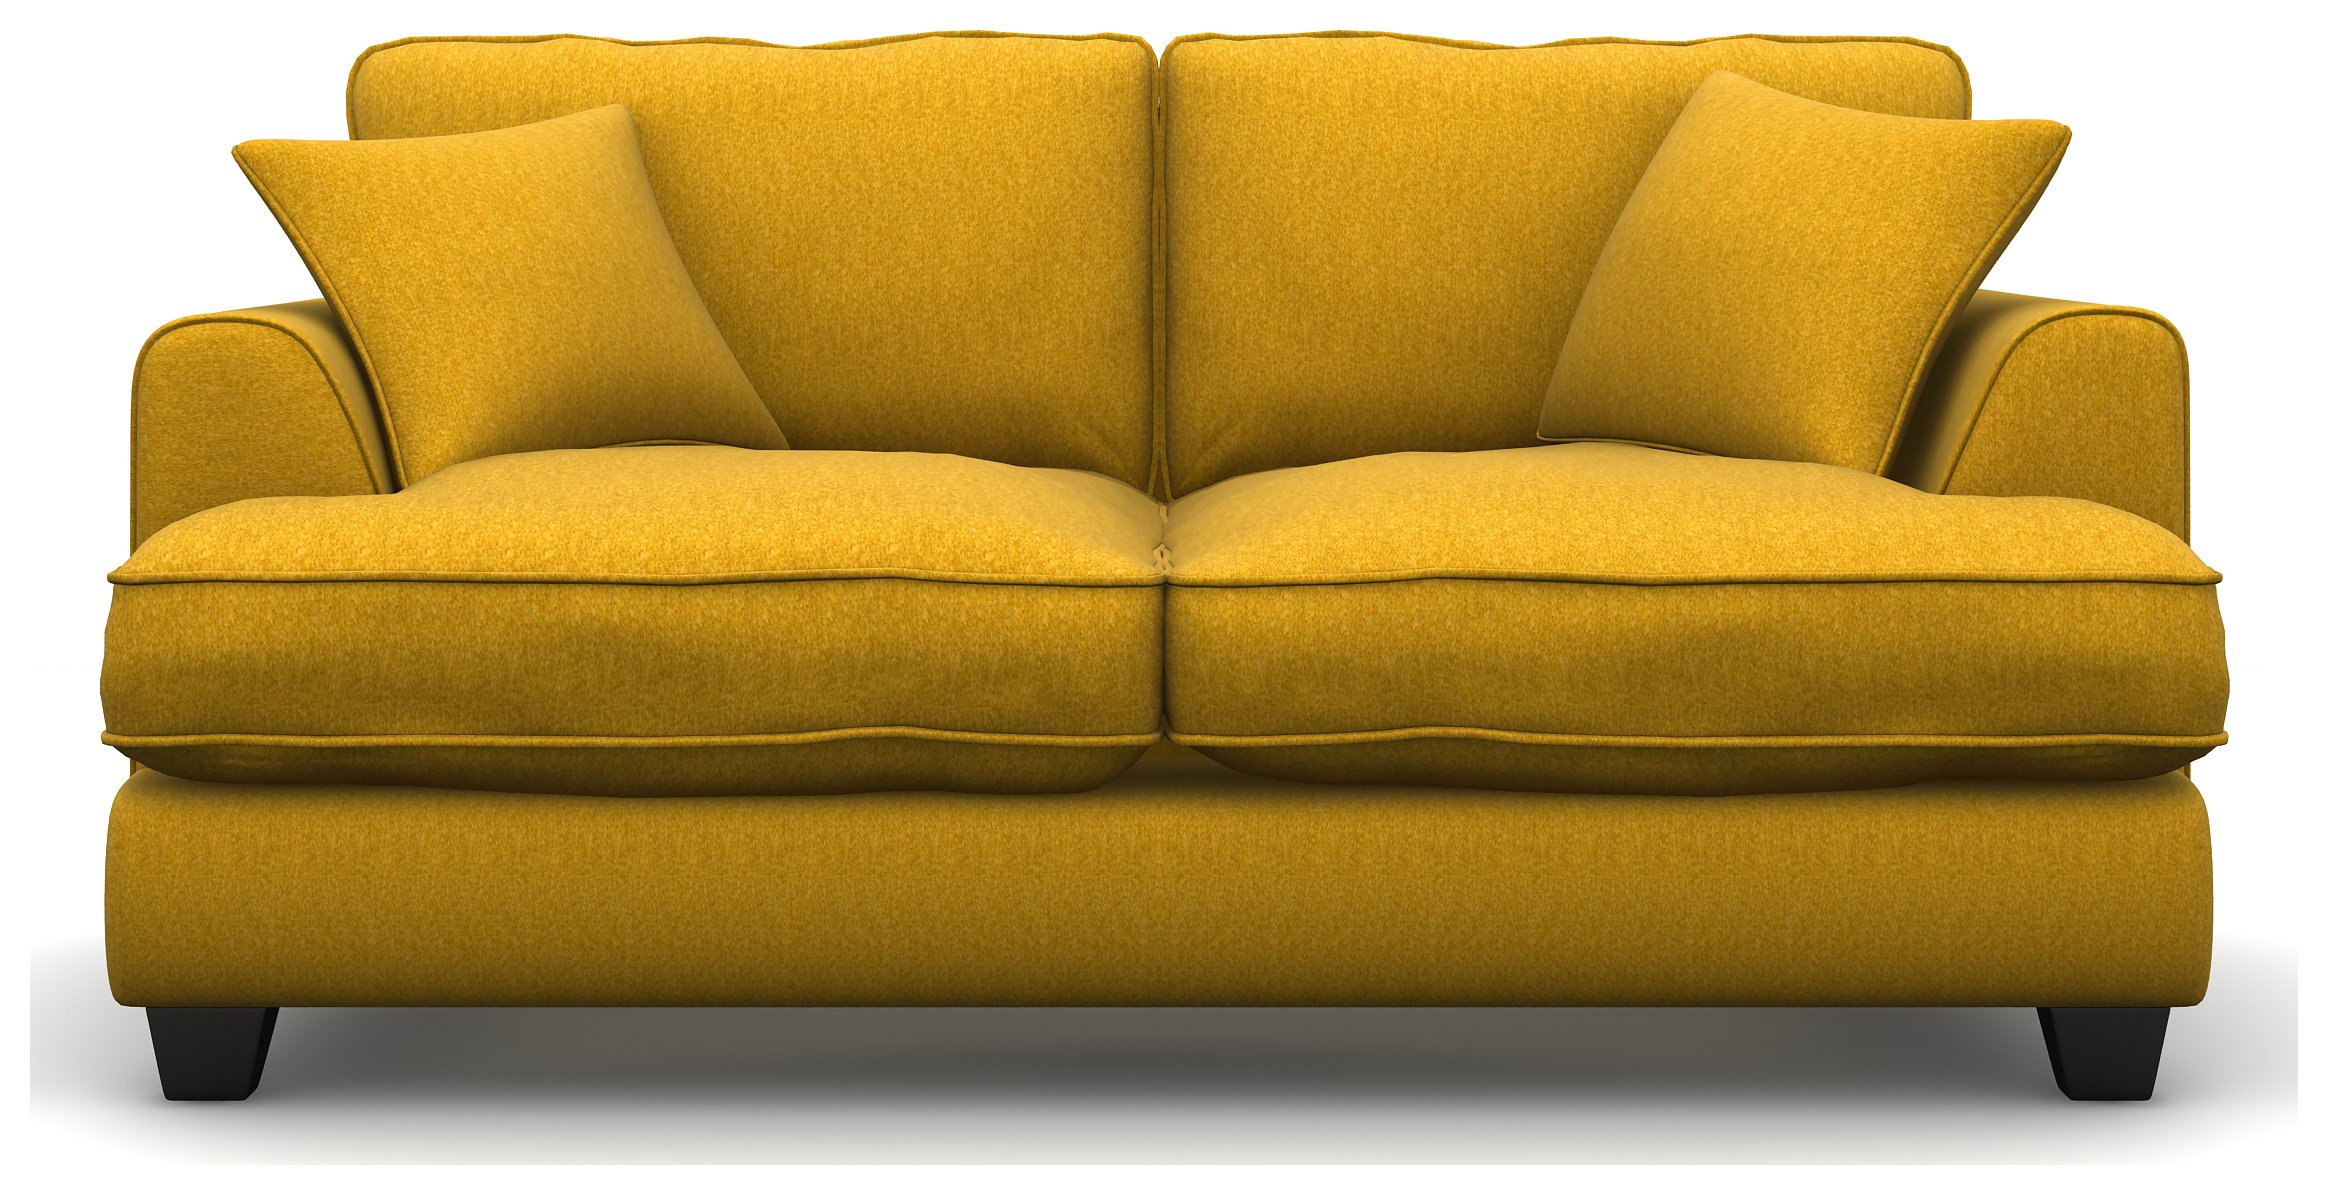 Heart of House Hampstead 2 Seater Tweed Sofa Bed - Saffron Yellow